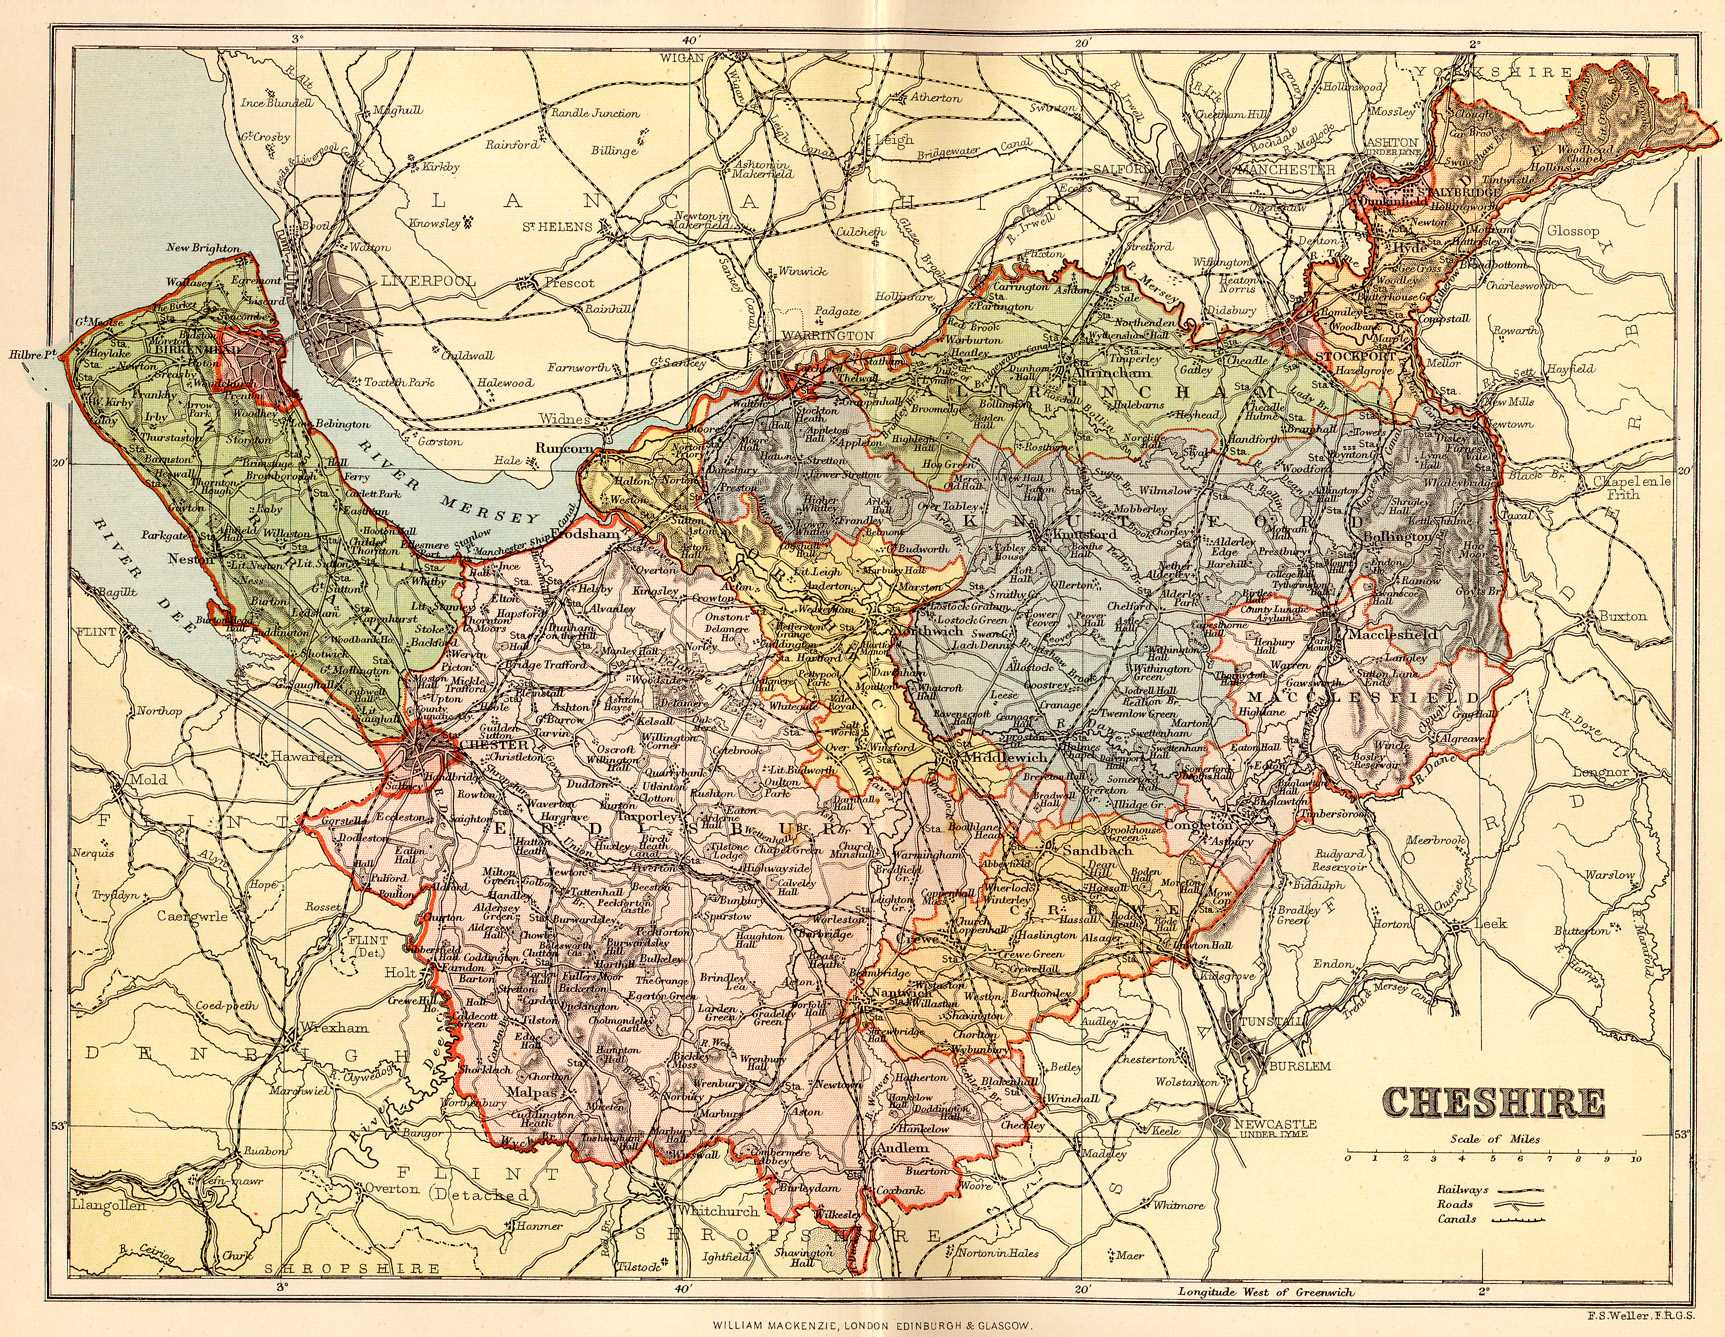 Old map of Ches... Cheshire